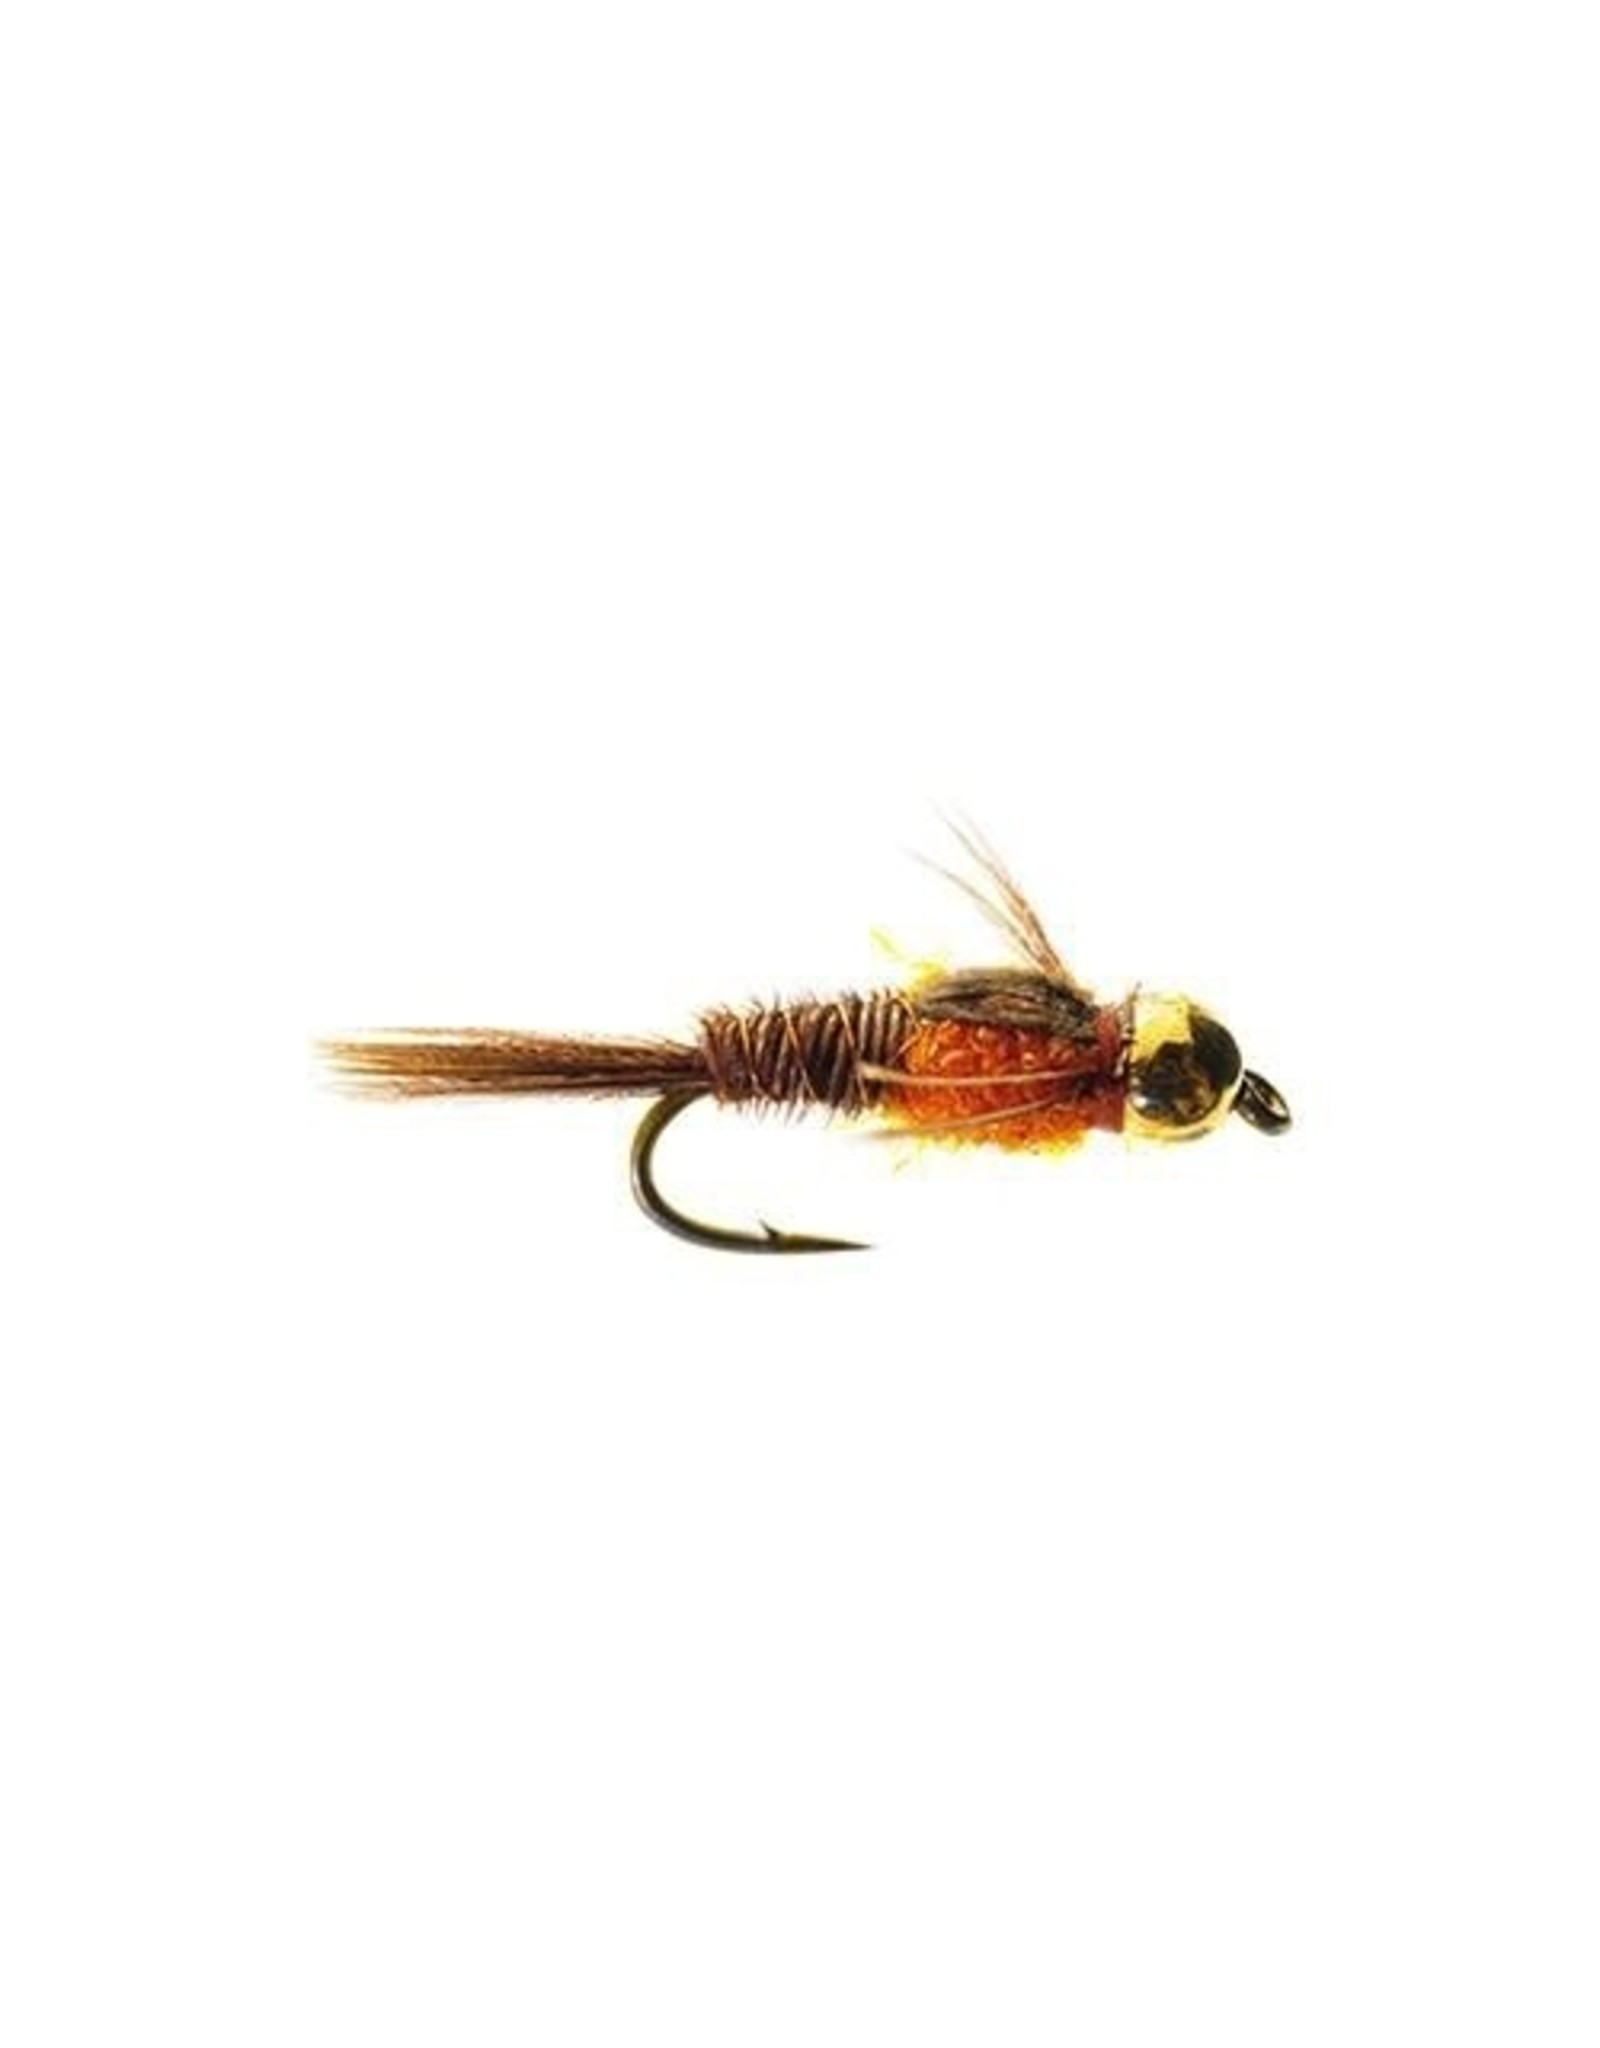 Umpqua Hot Belly Pheasant Tail (3 Pack)